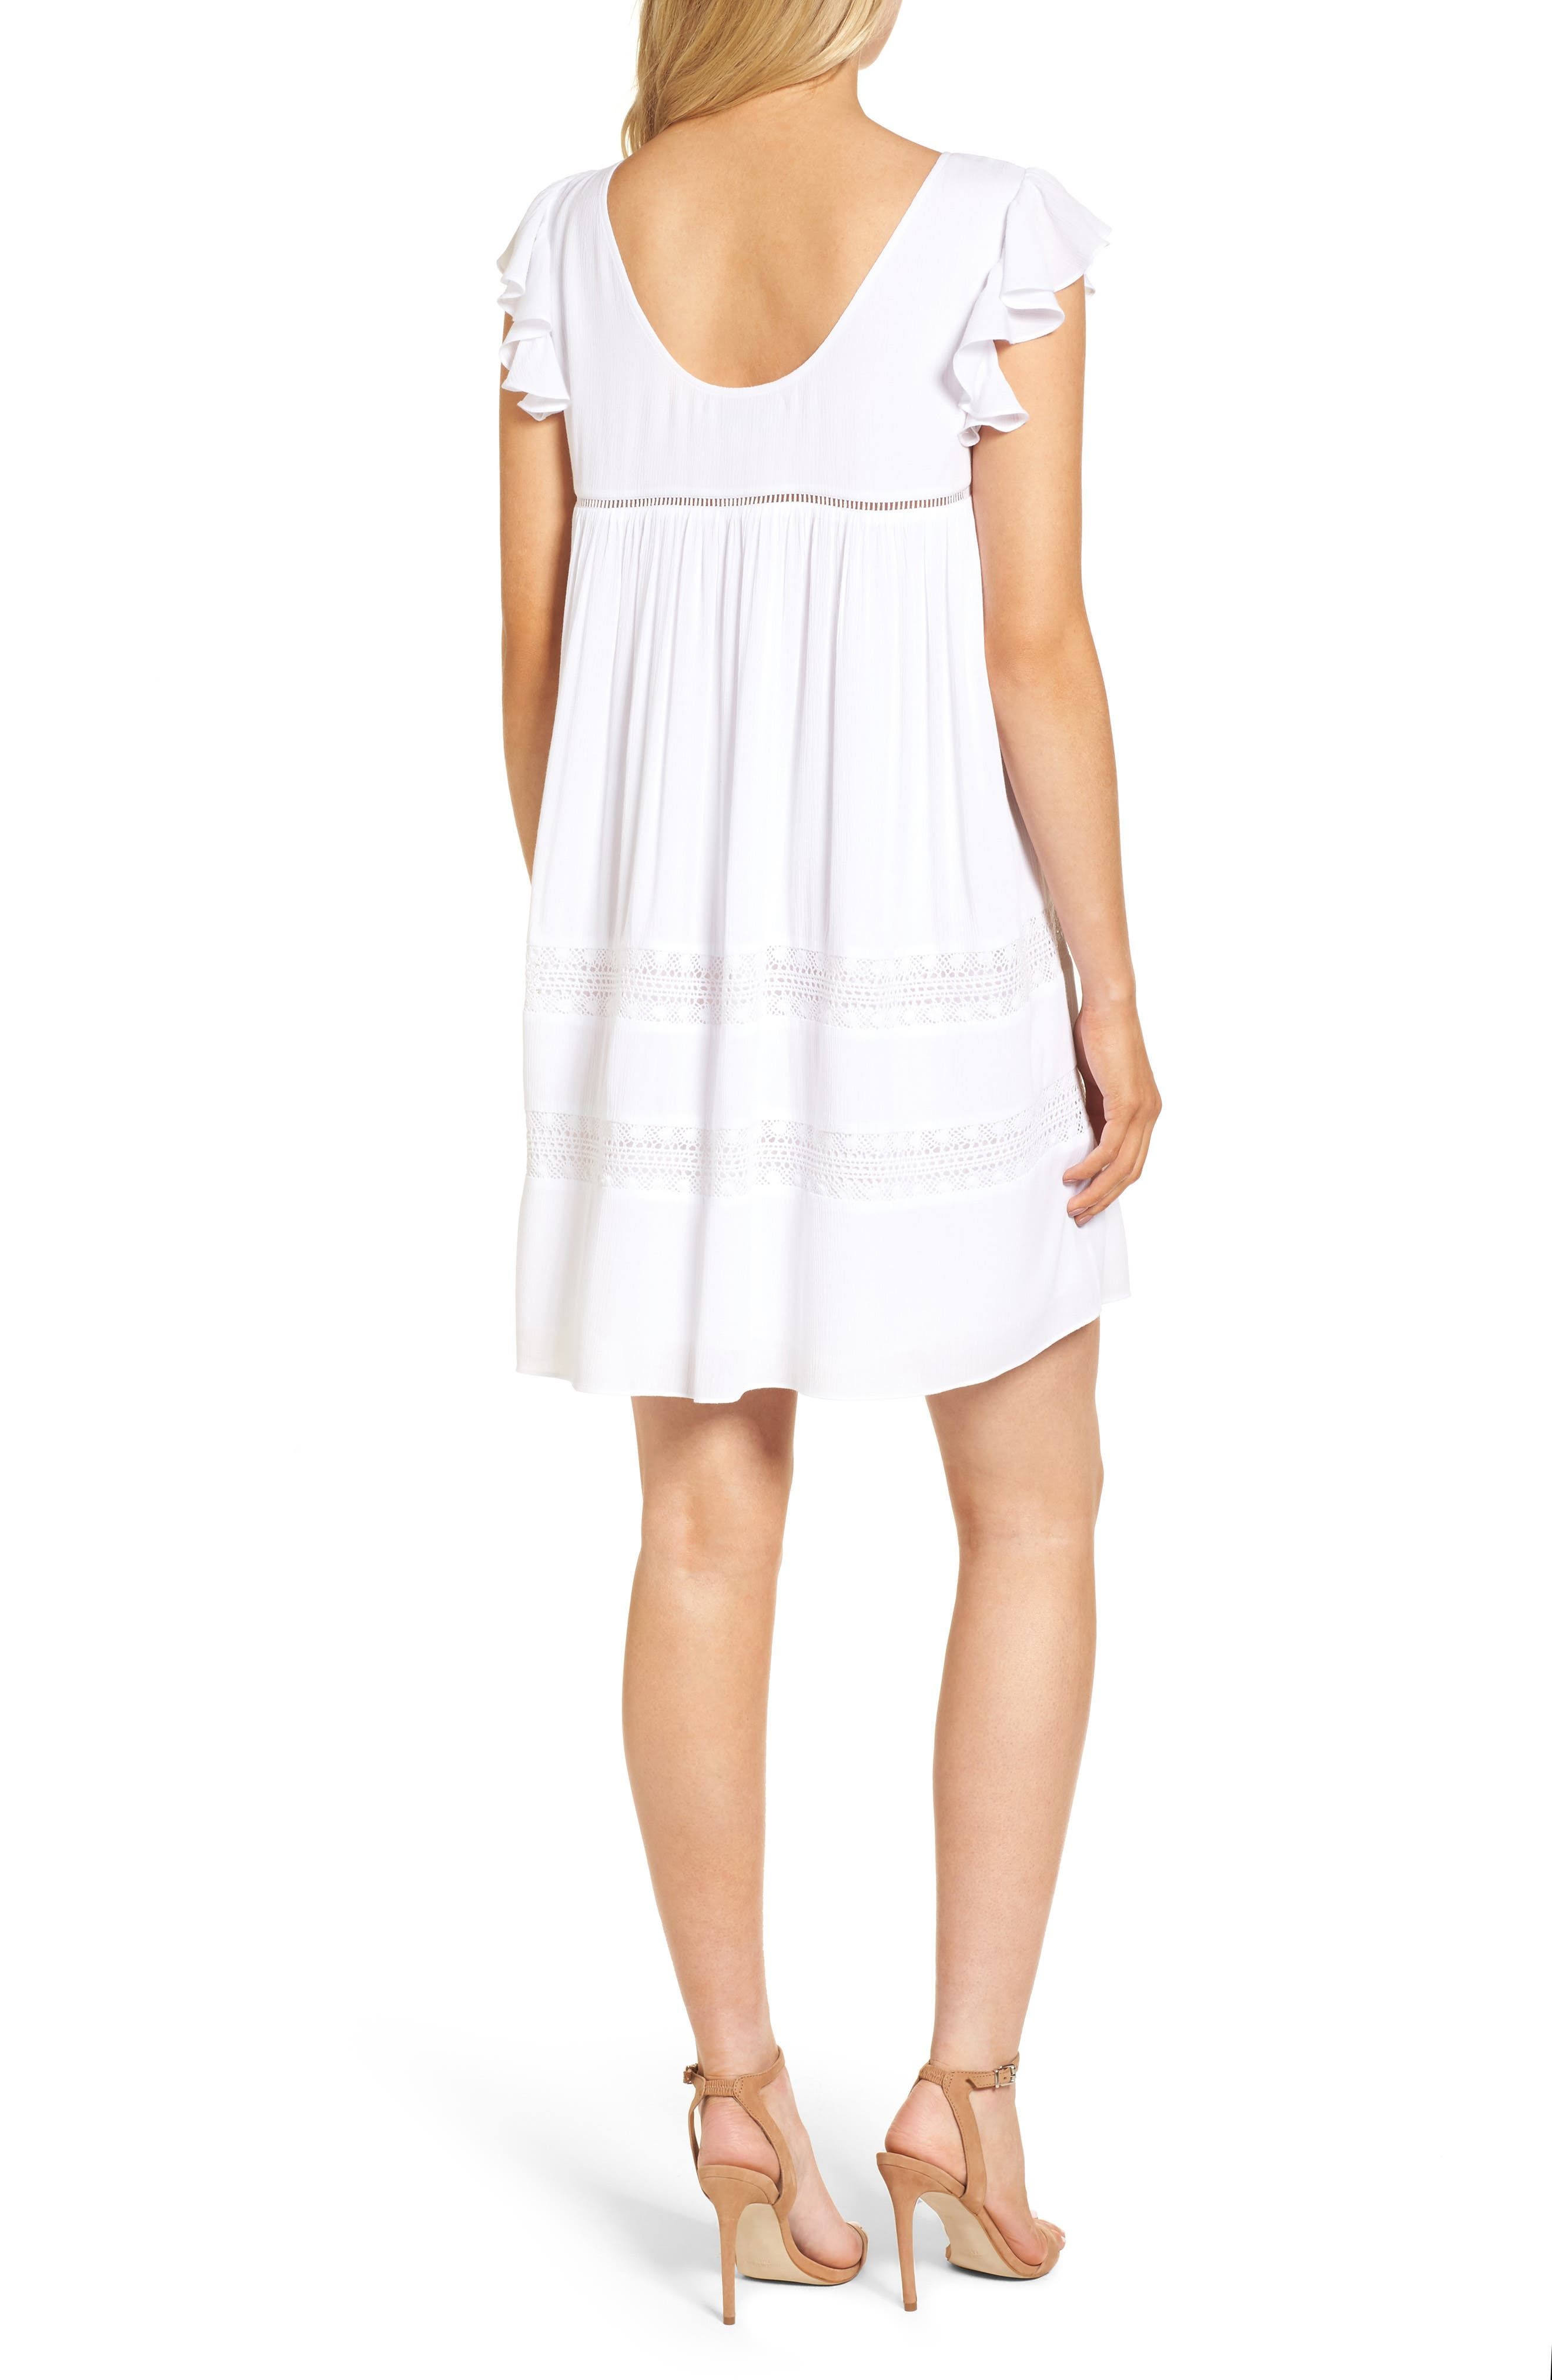 Boca Dress,                             Alternate thumbnail 2, color,                             White